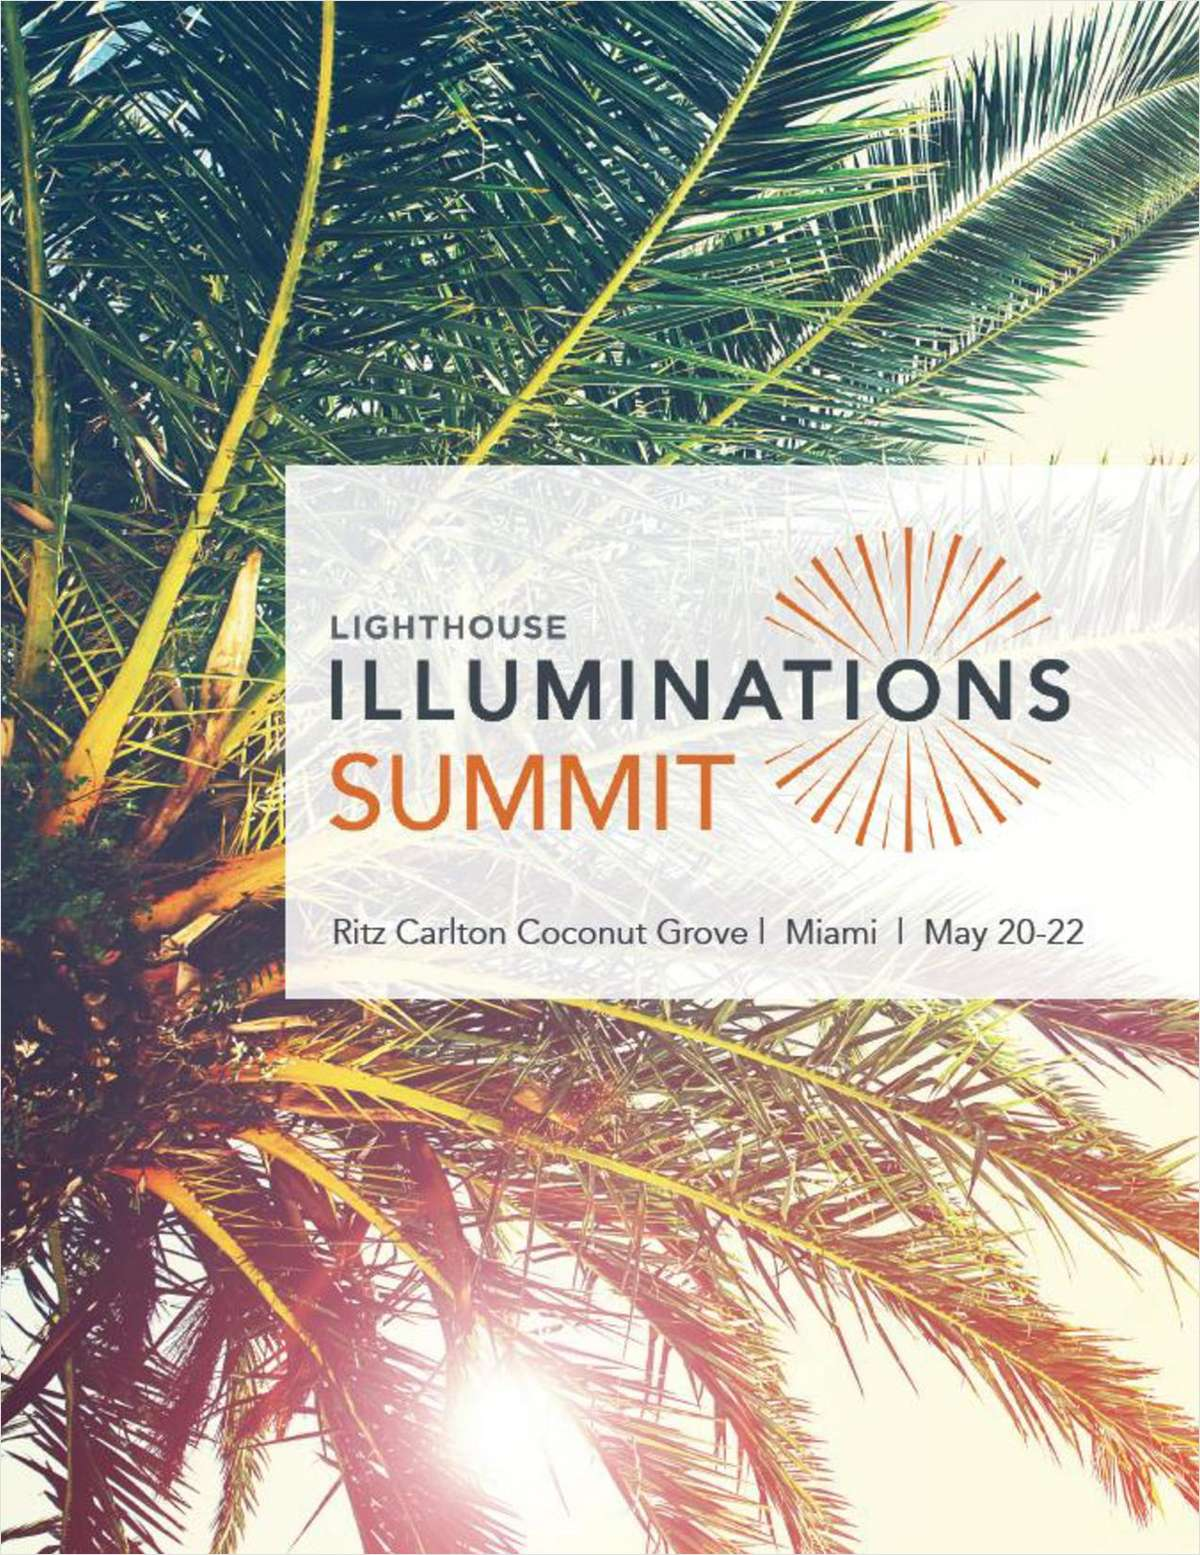 Key Ediscovery, Compliance, and Information Governance Insights from 2019 Illuminations Summit